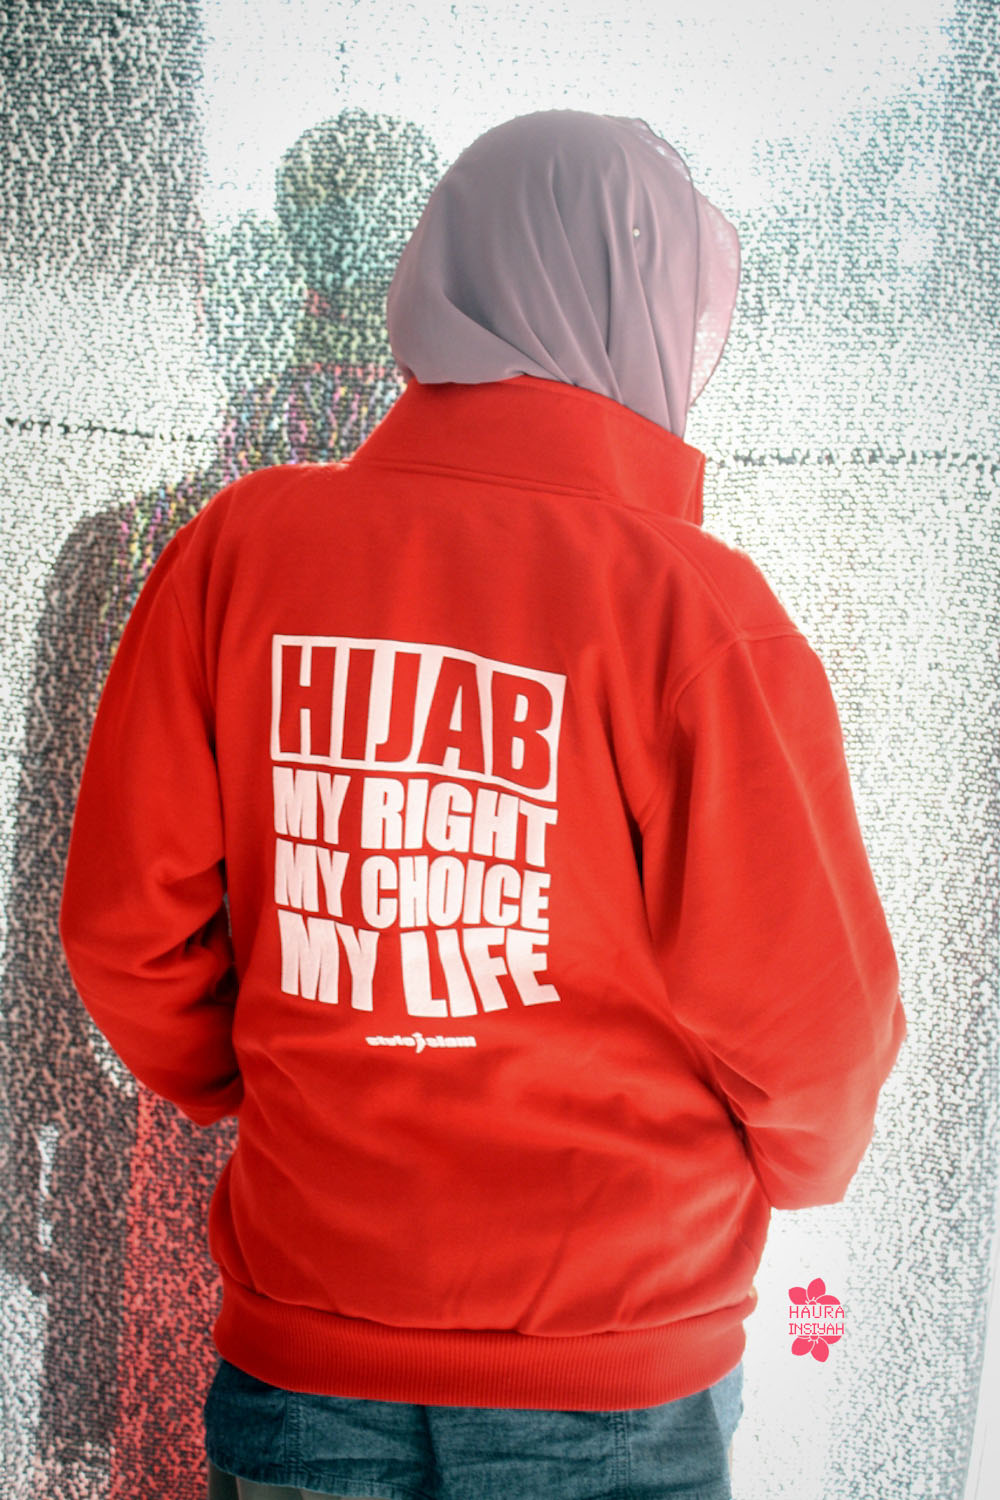 img_0440-8-copy HIJAB: My Right, My Choice, My Life